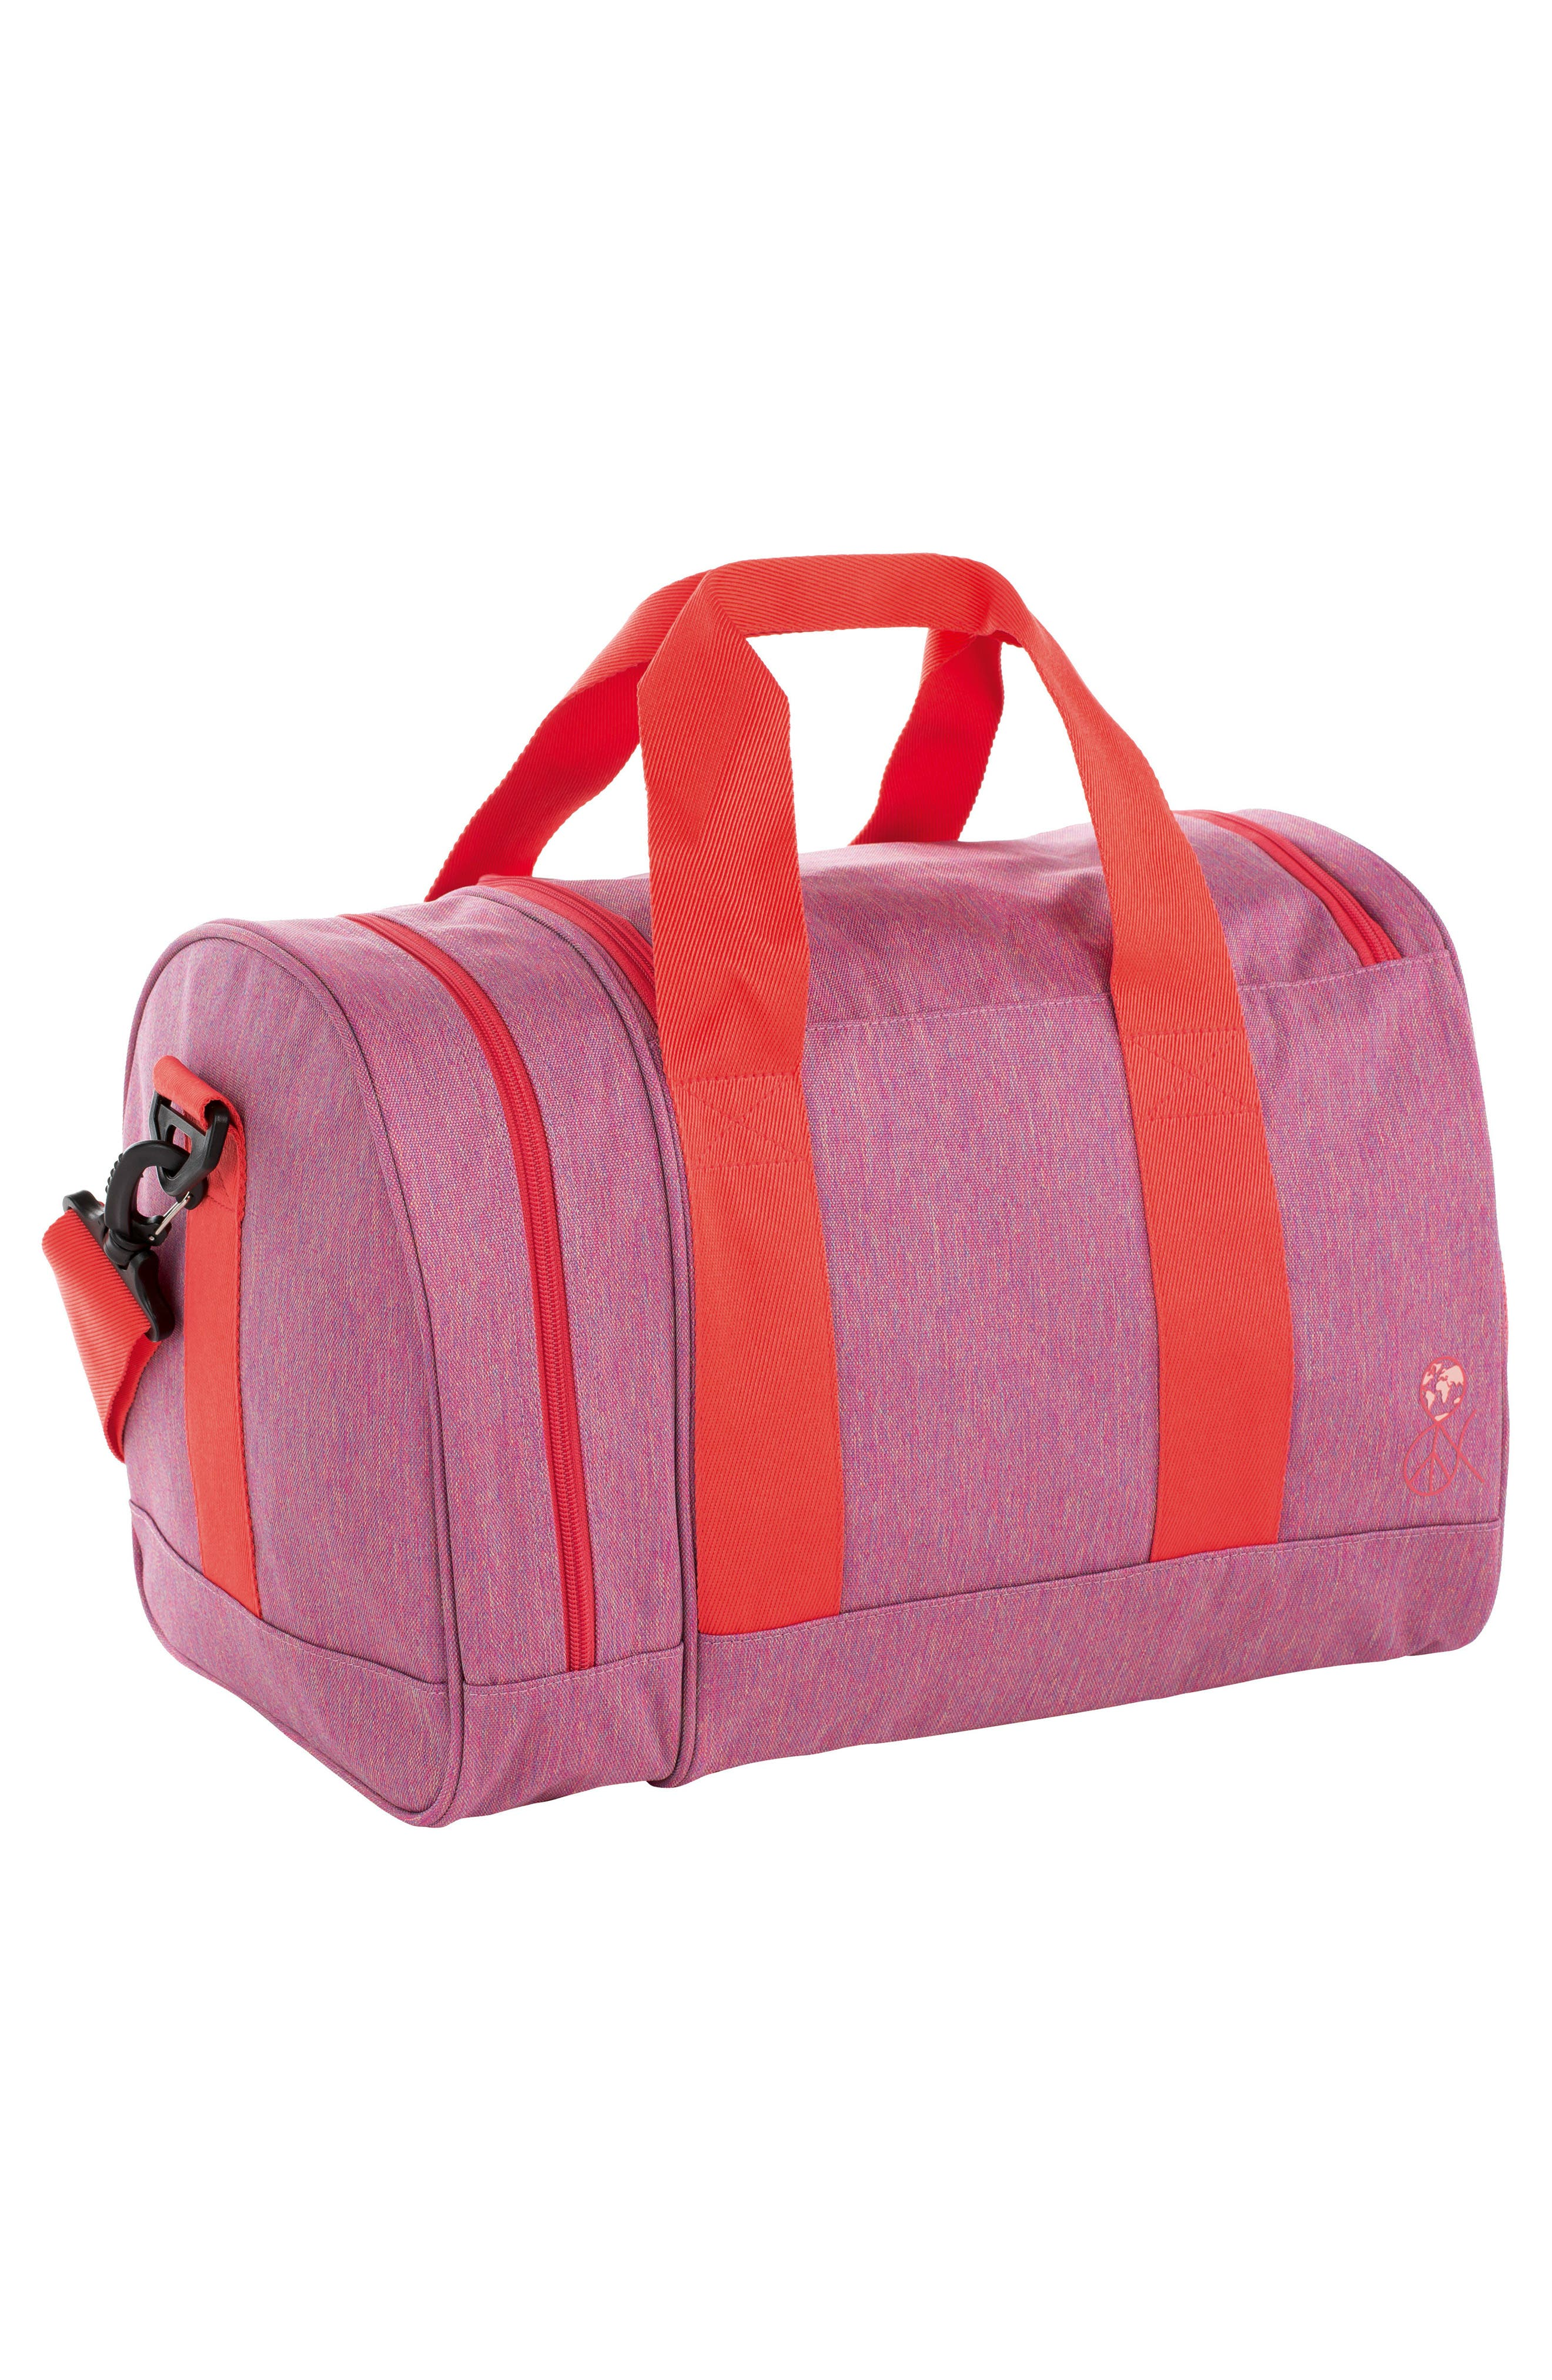 Mini About Friends Duffel Bag,                             Alternate thumbnail 2, color,                             Melange Pink